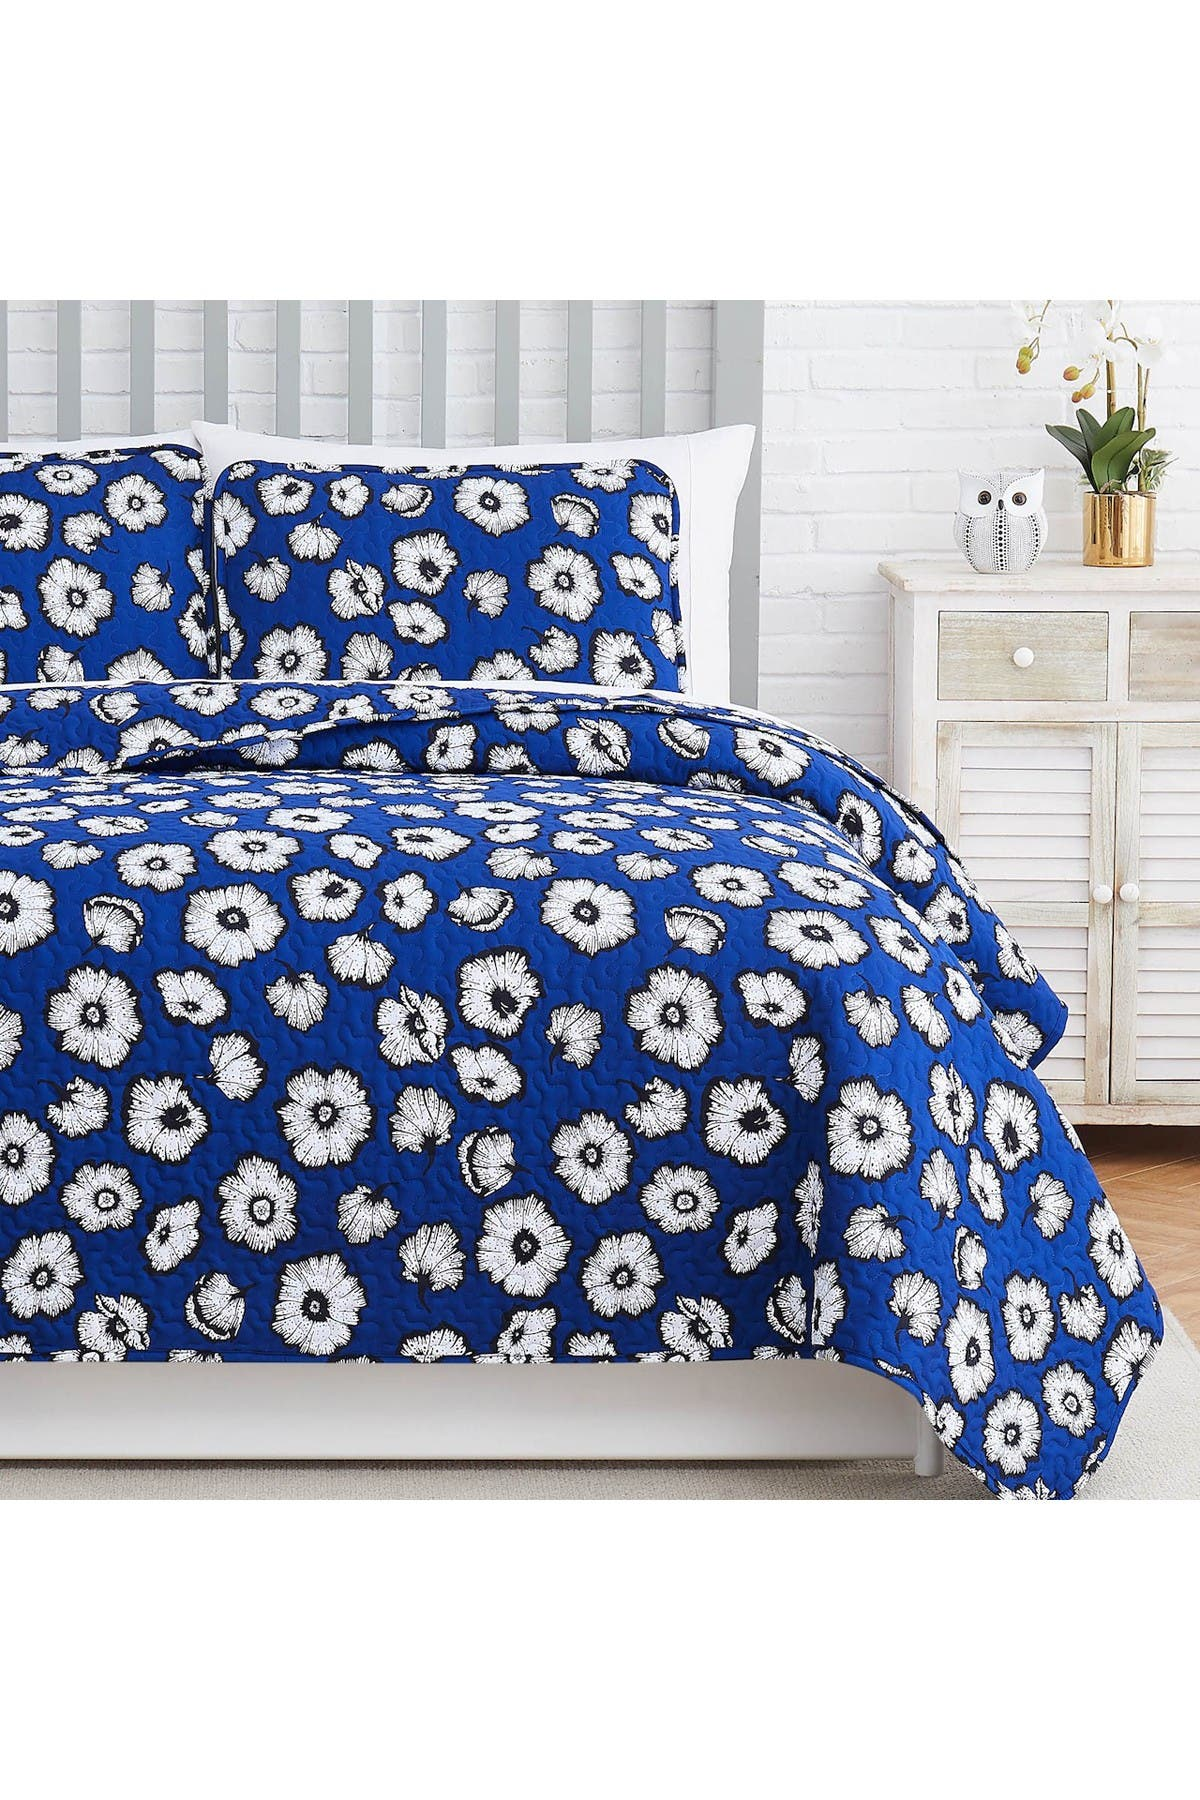 Image of SOUTHSHORE FINE LINENS Essence Oversized Quilt Cover Set - Blue - Full/Queen